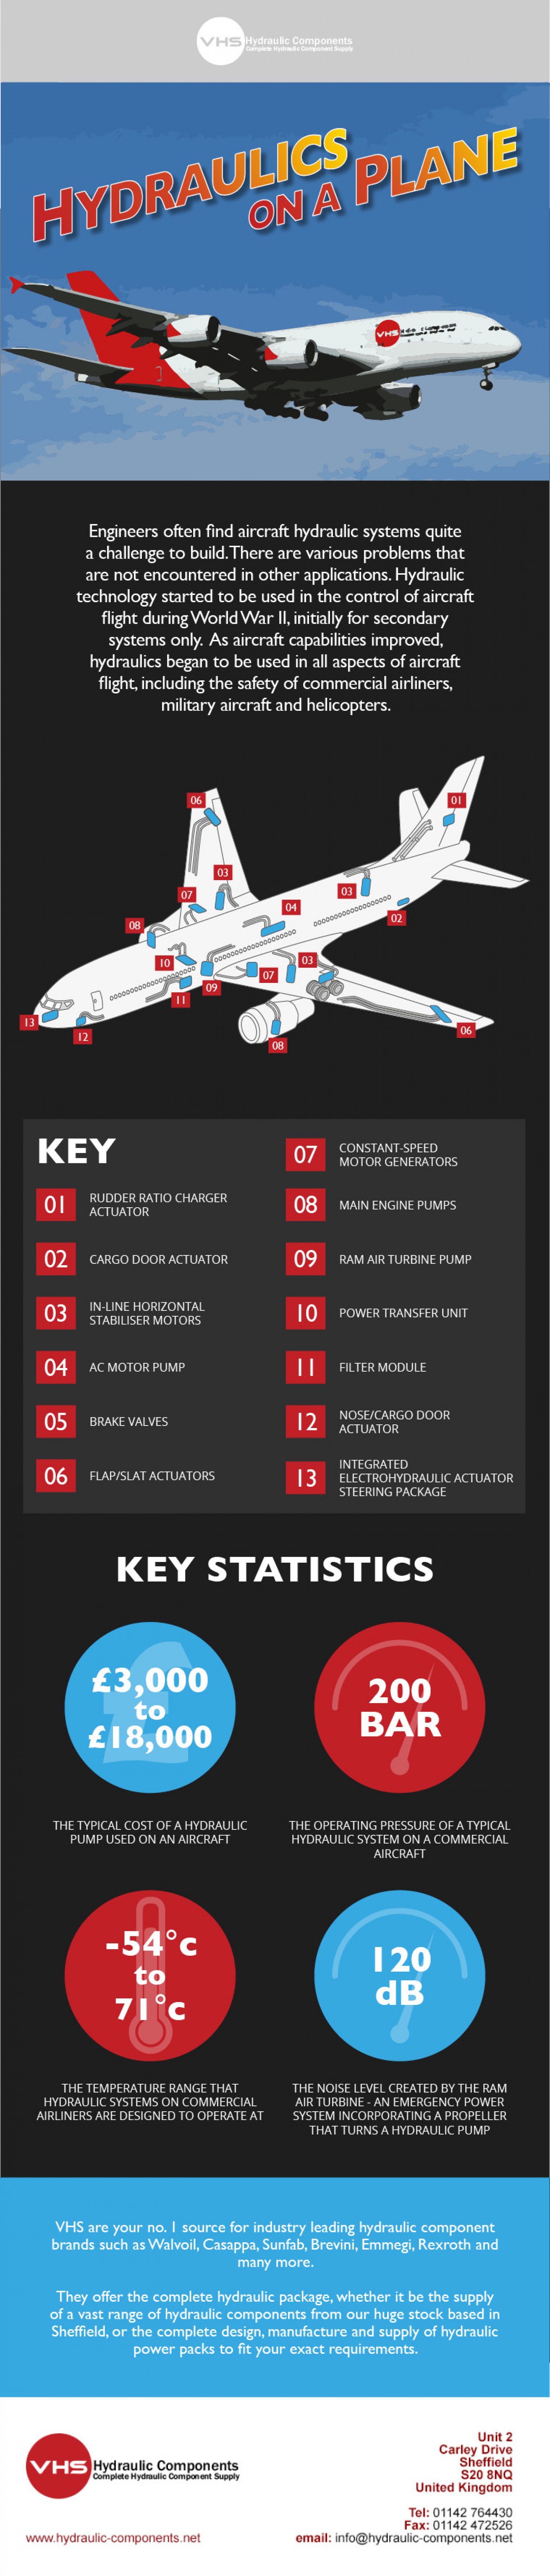 Hydraulics on a Plane! Infographic